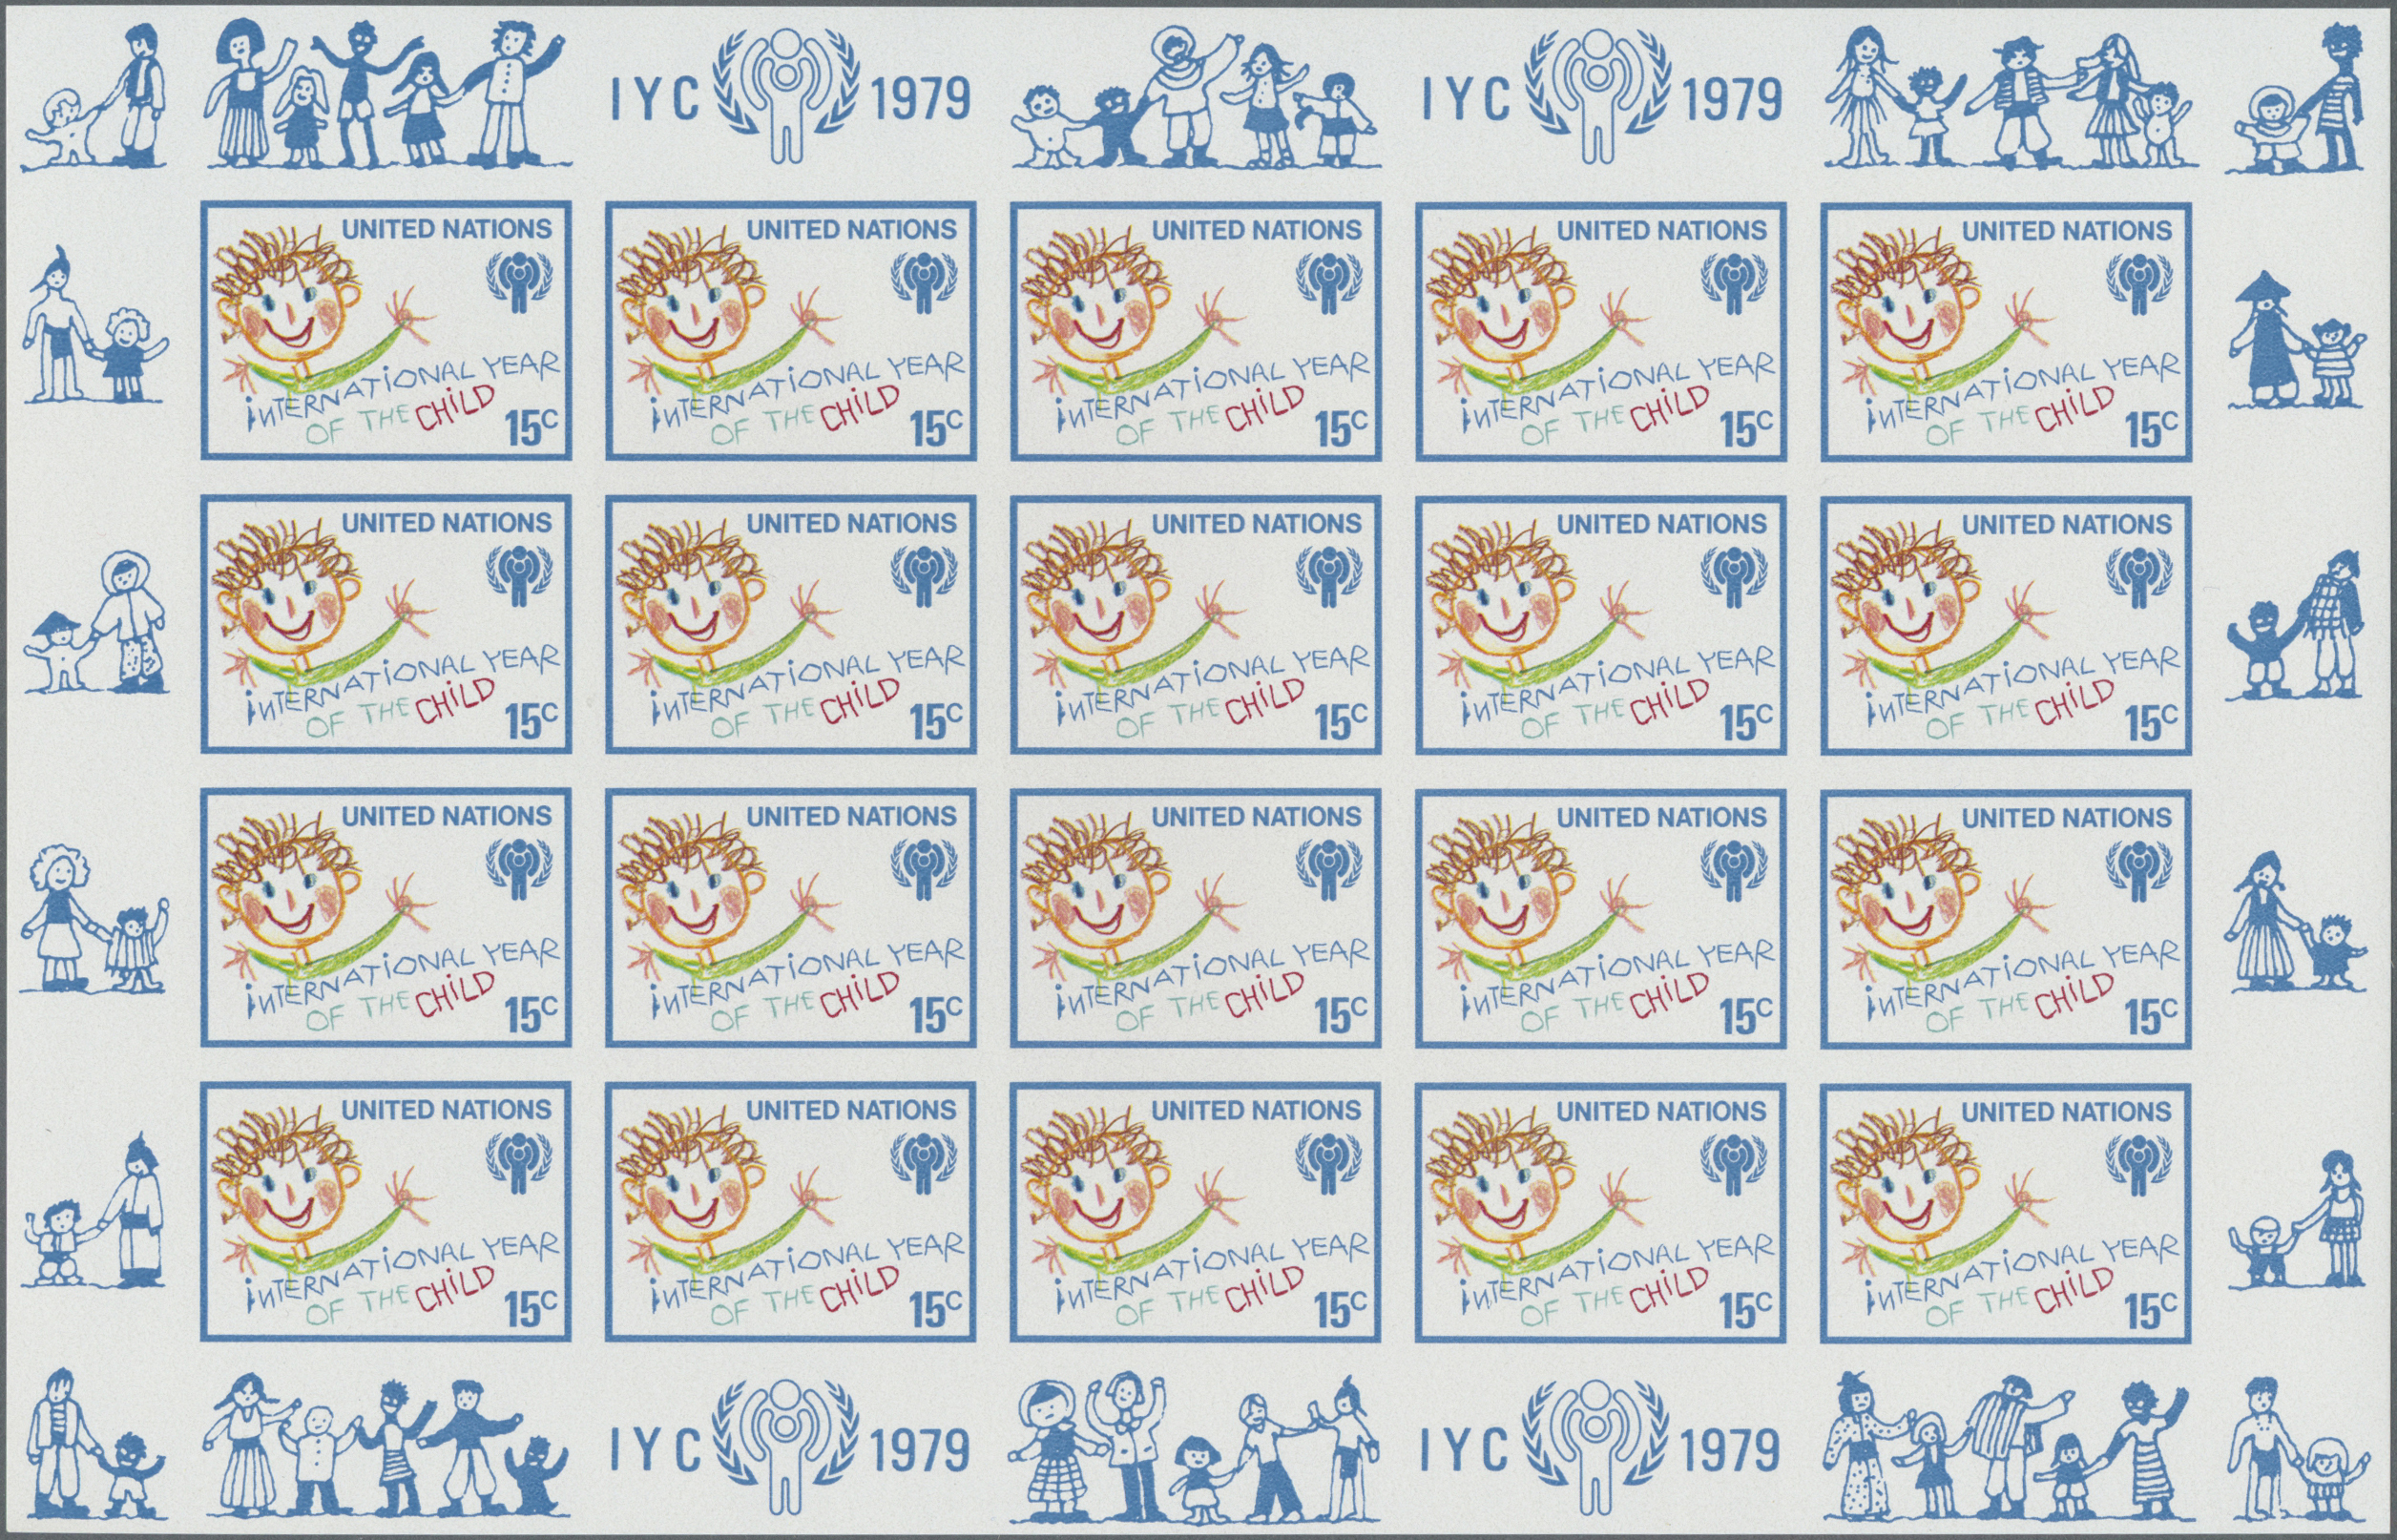 Lot 14809 - Vereinte Nationen - New York  -  Auktionshaus Christoph Gärtner GmbH & Co. KG Single lots Philately Overseas & Europe. Auction #39 Day 4